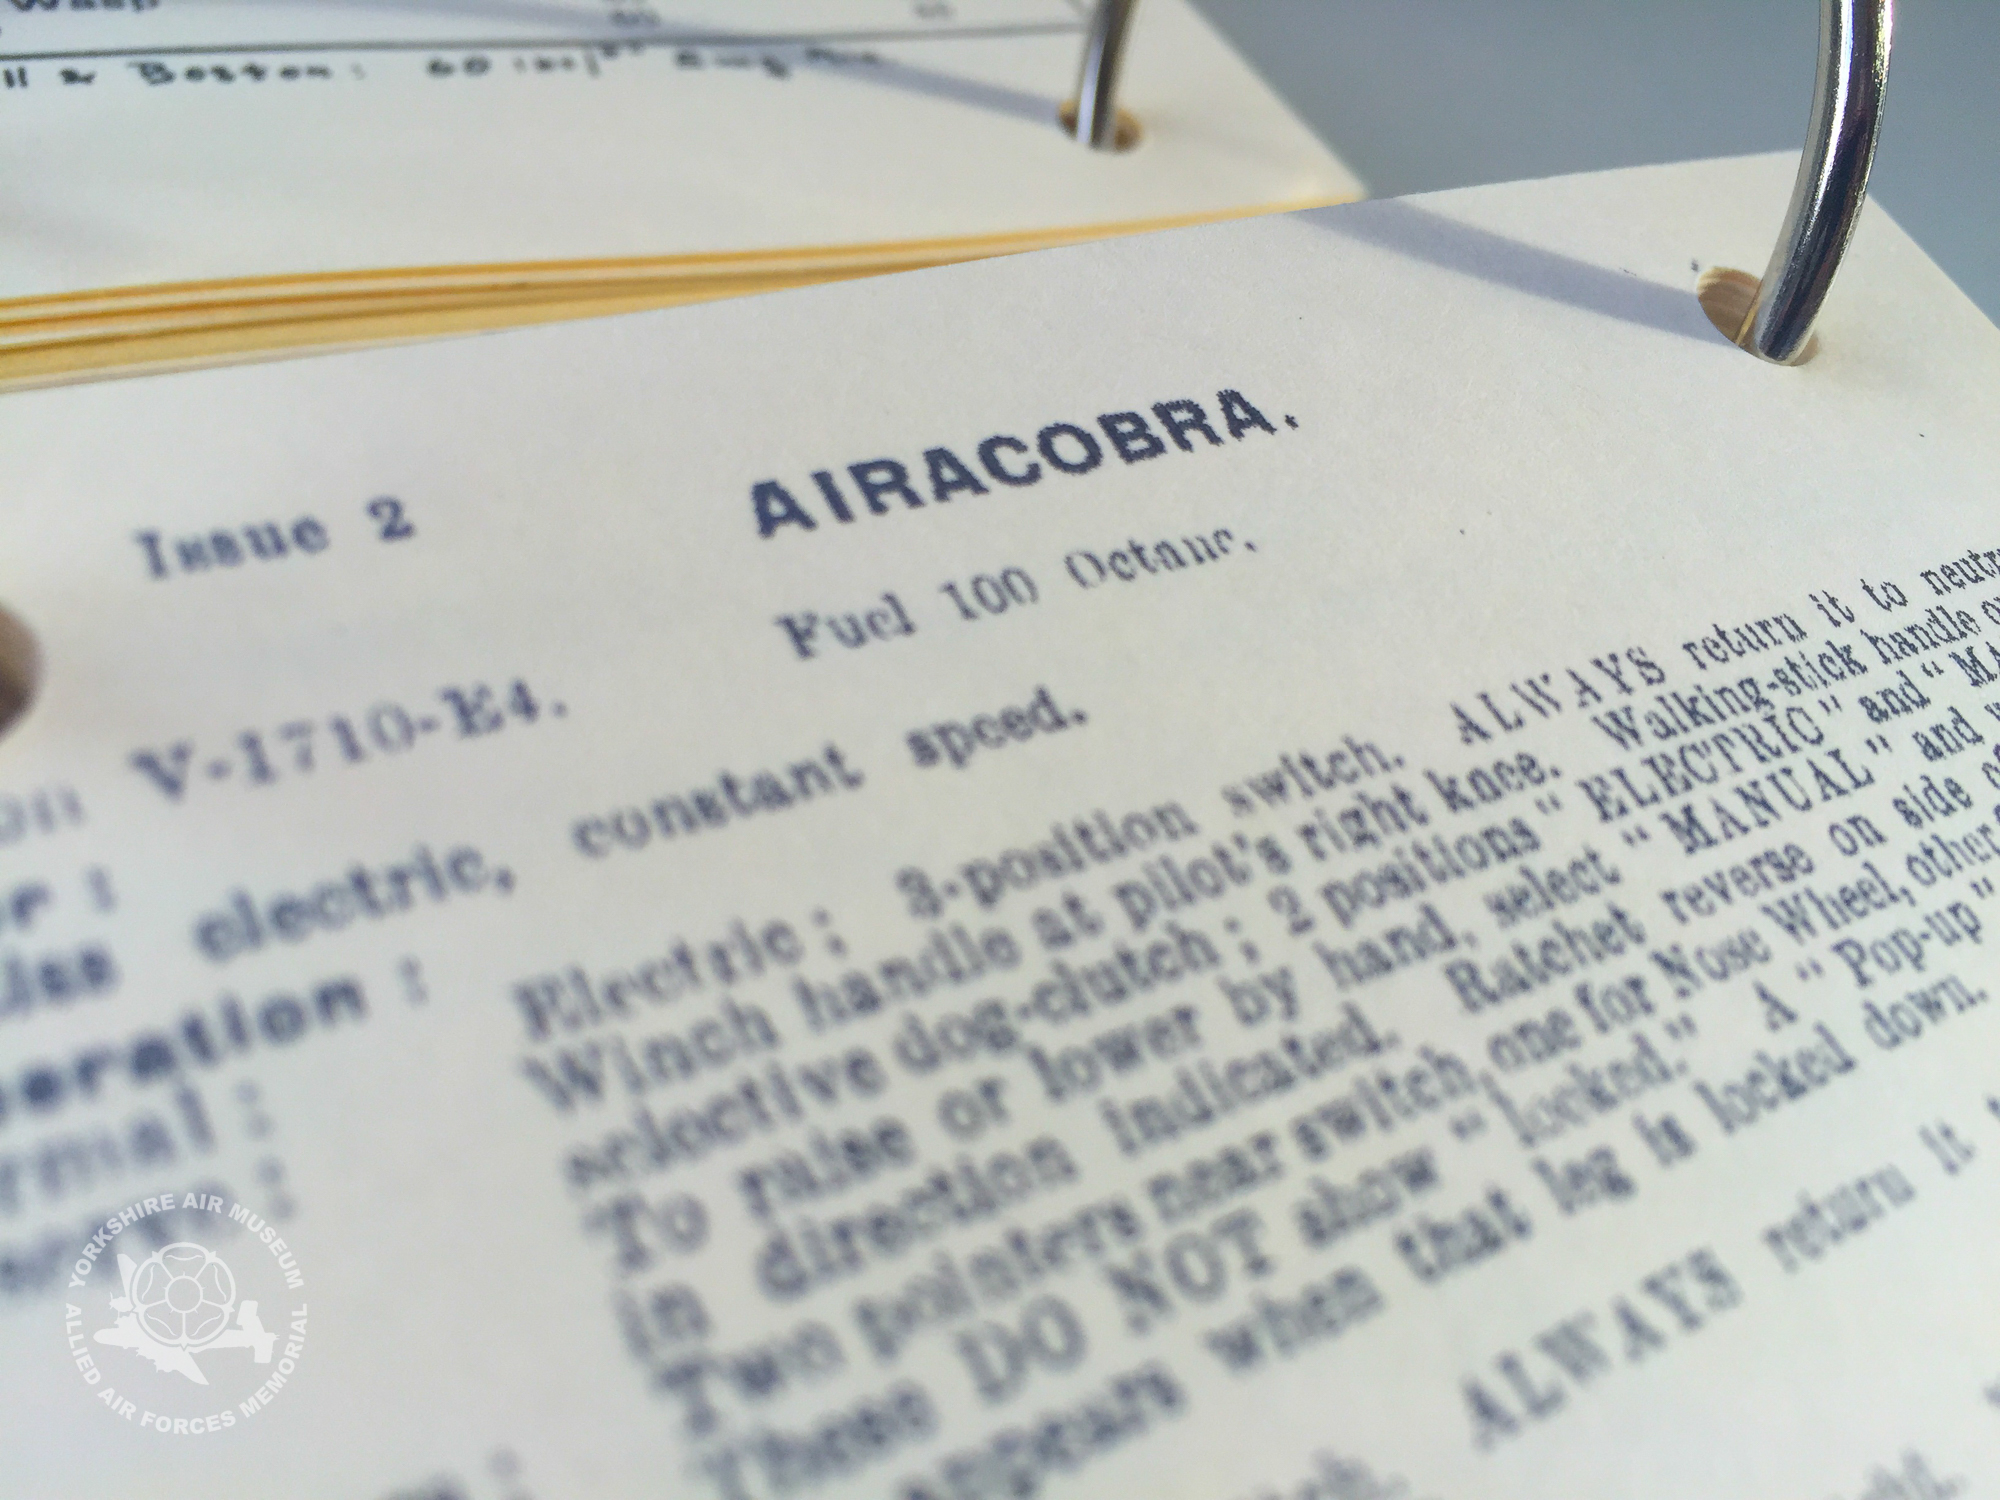 From A to Z, starting with Aircobra